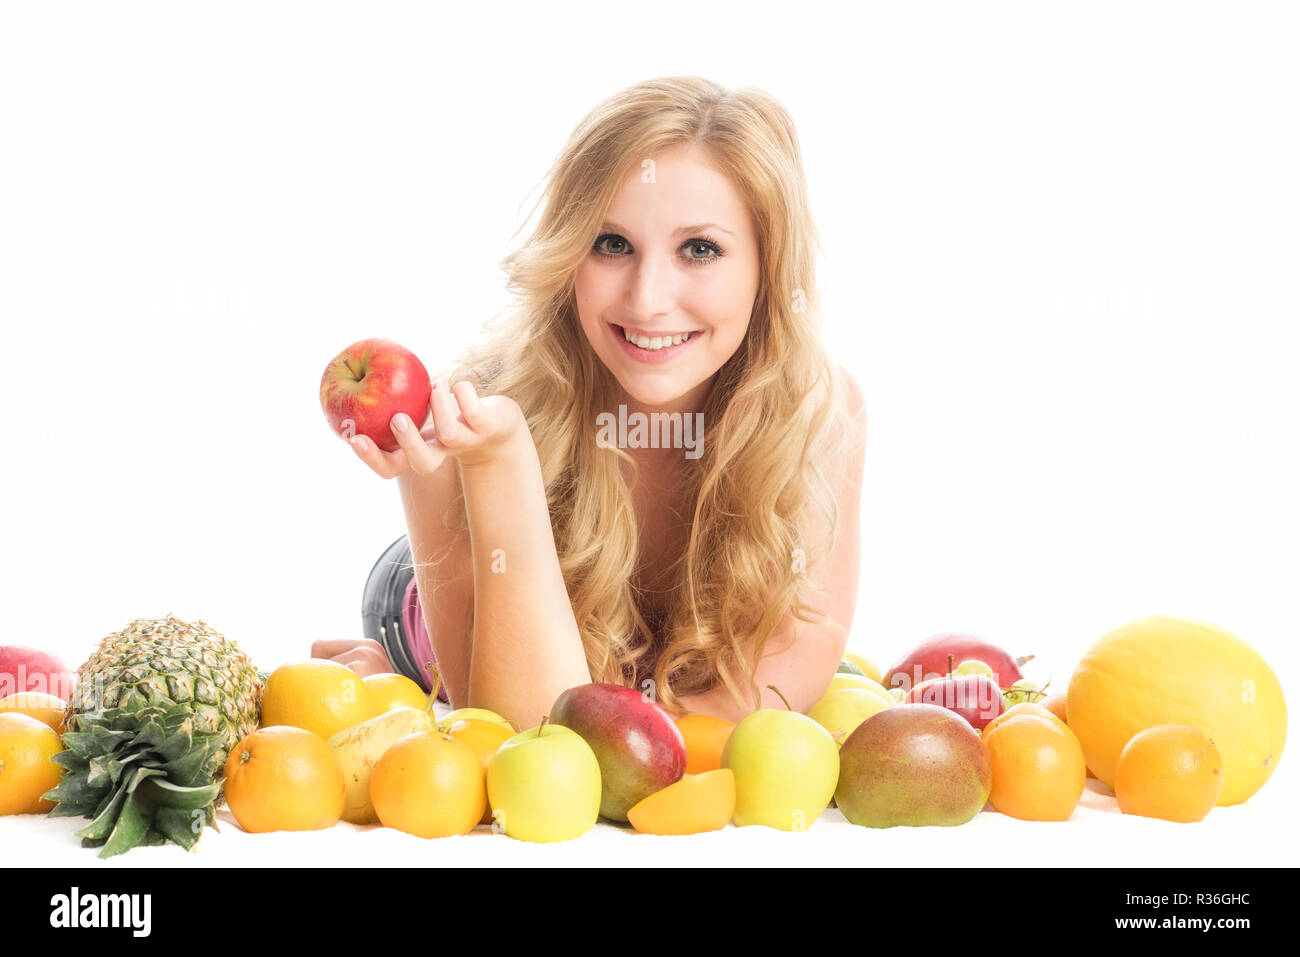 woman in the midst of fruit - Stock Image